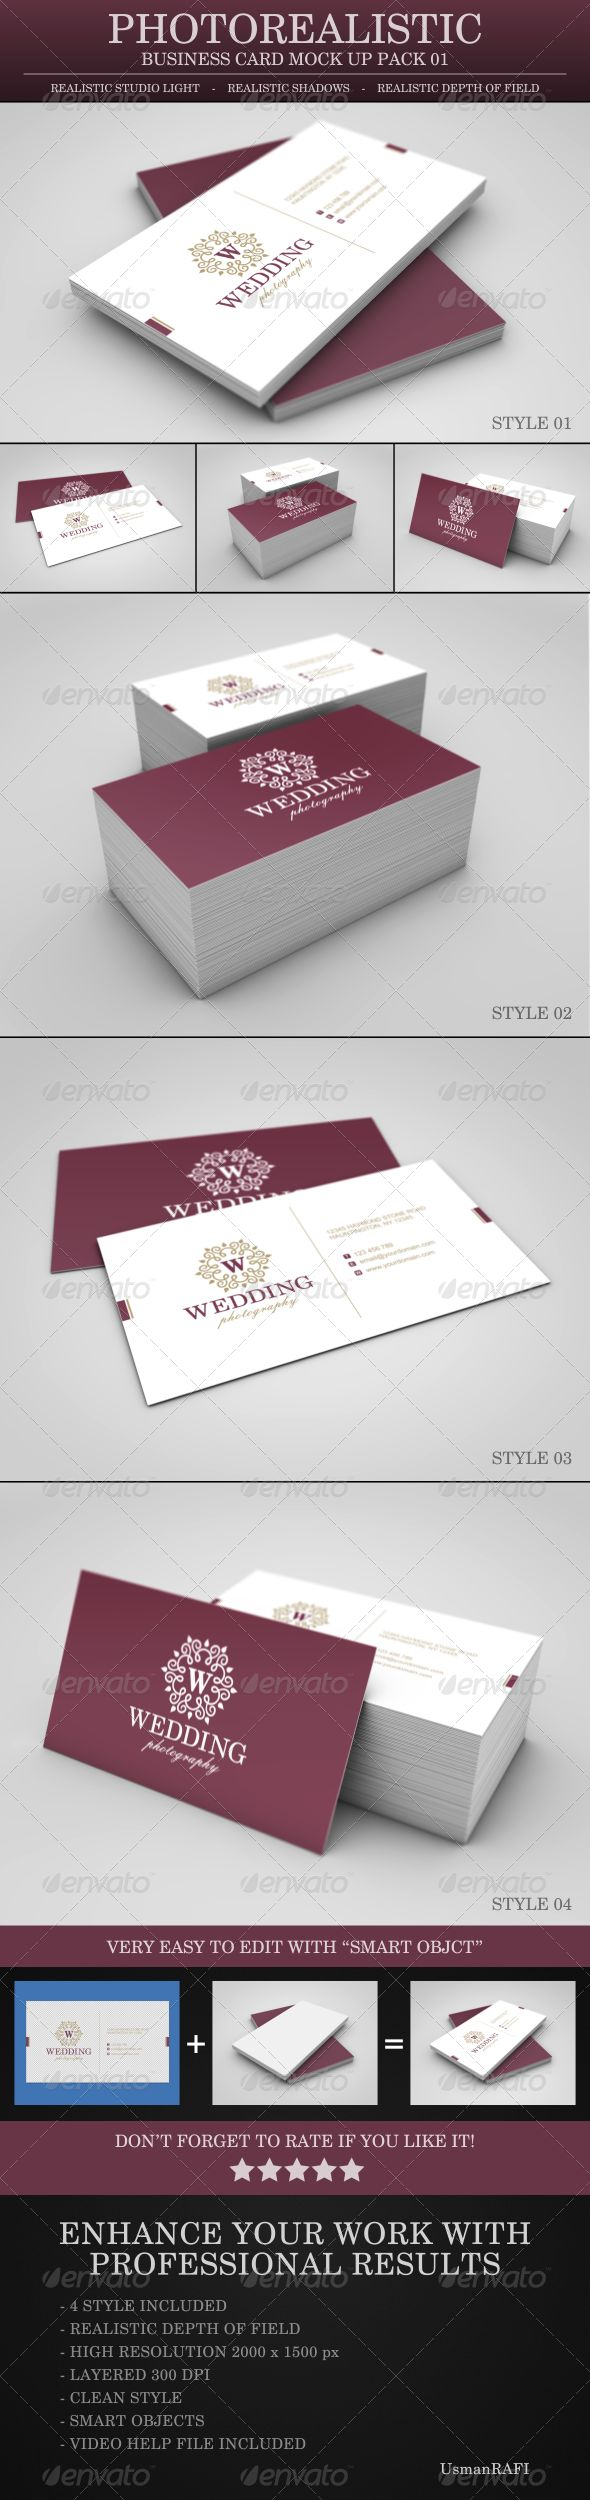 15 best mock ups images on pinterest miniatures mockup and model photo realistic business card mock up pack 01 reheart Image collections